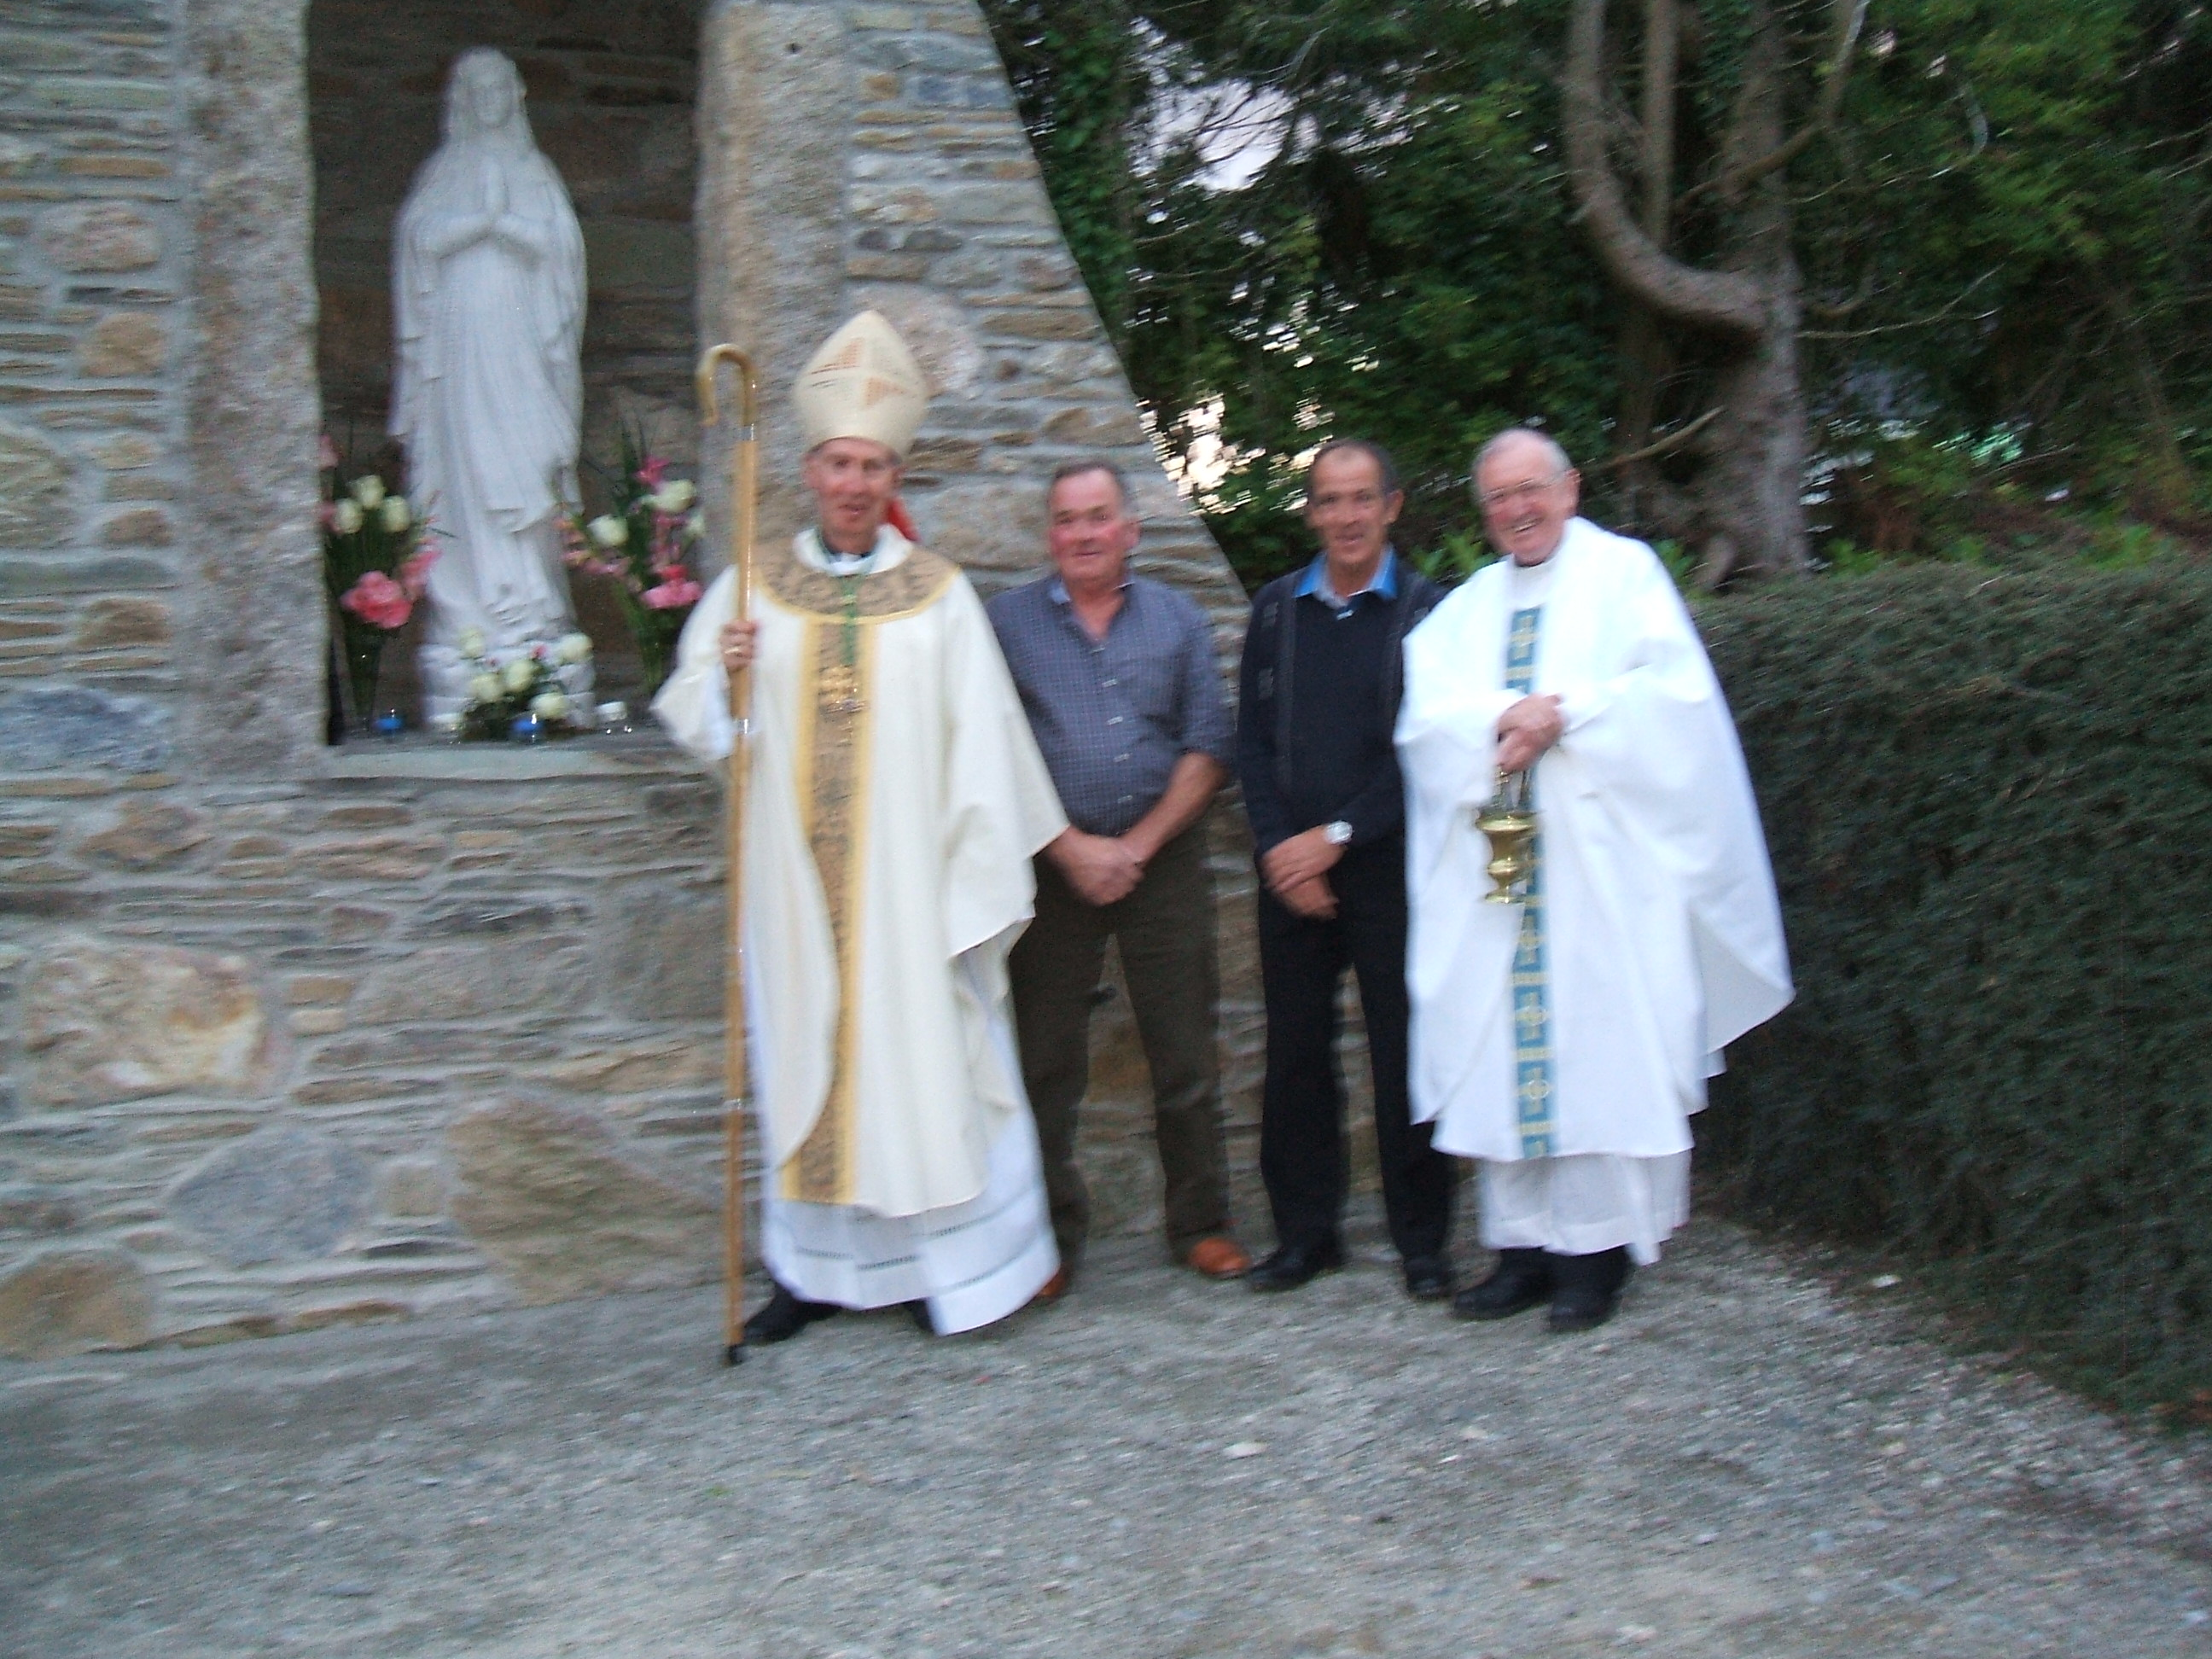 Bishop Denis with Fr. Pat Duffy and Mick Dunne & James Doyle who constructed the Grotto.